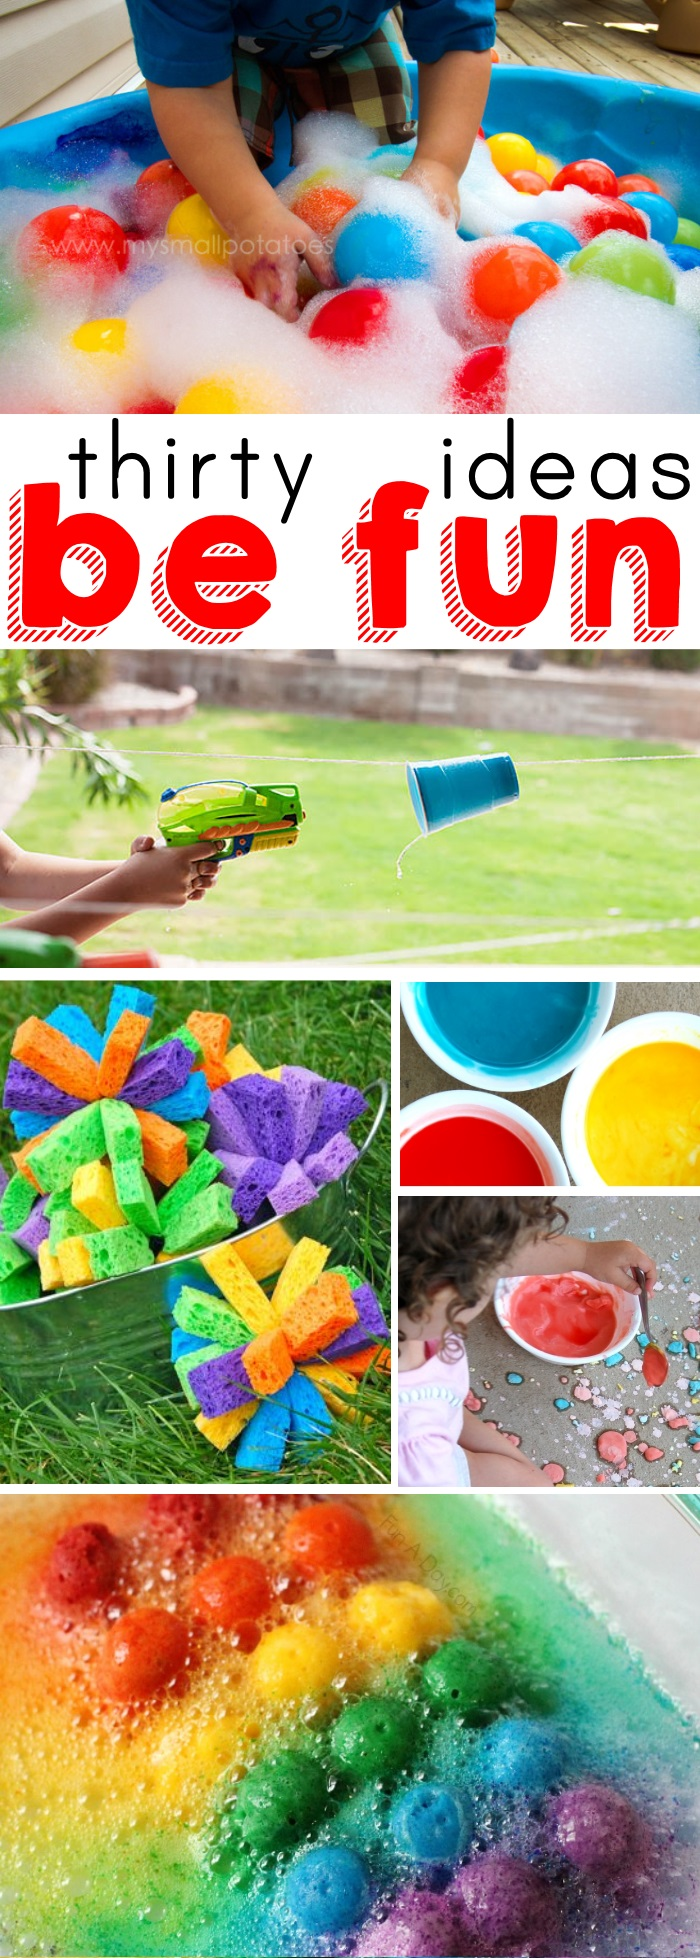 Summer Ideas To Keep The Kids Busy Kids Activities Blog